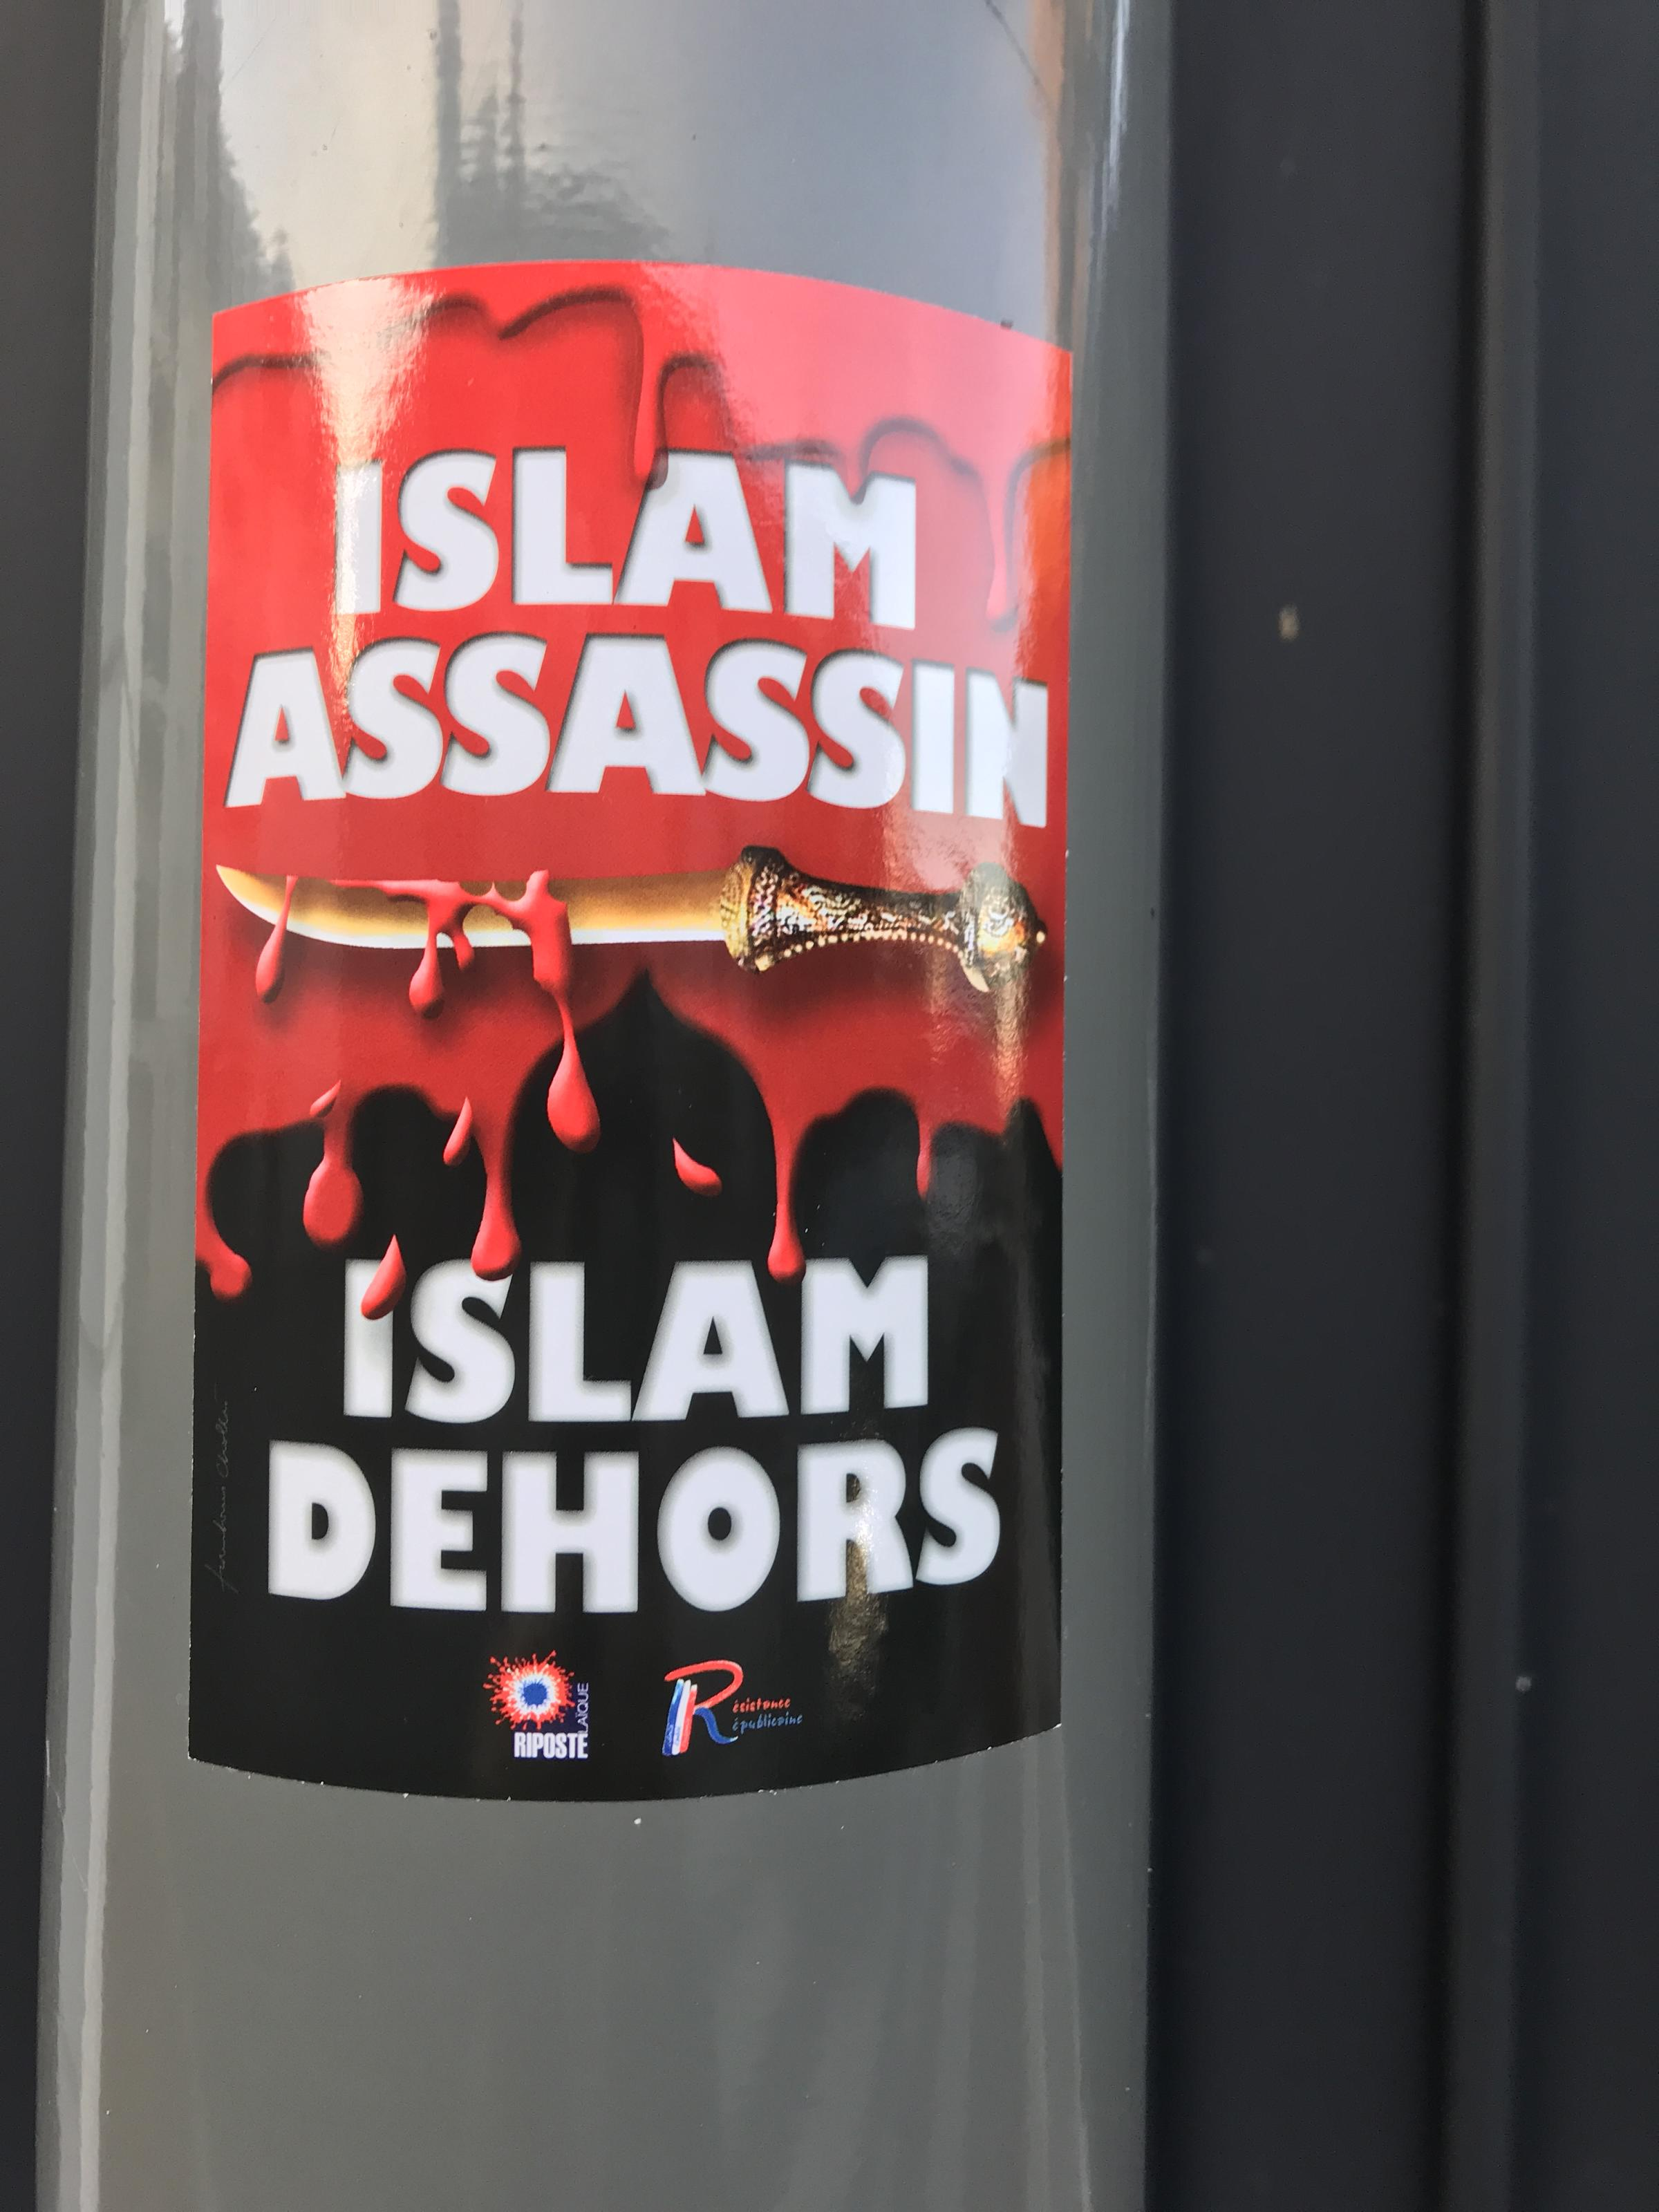 Scandaleuse condamnation de Christine Tasin : 8000 euros pour les autocollants « islam assassin »!